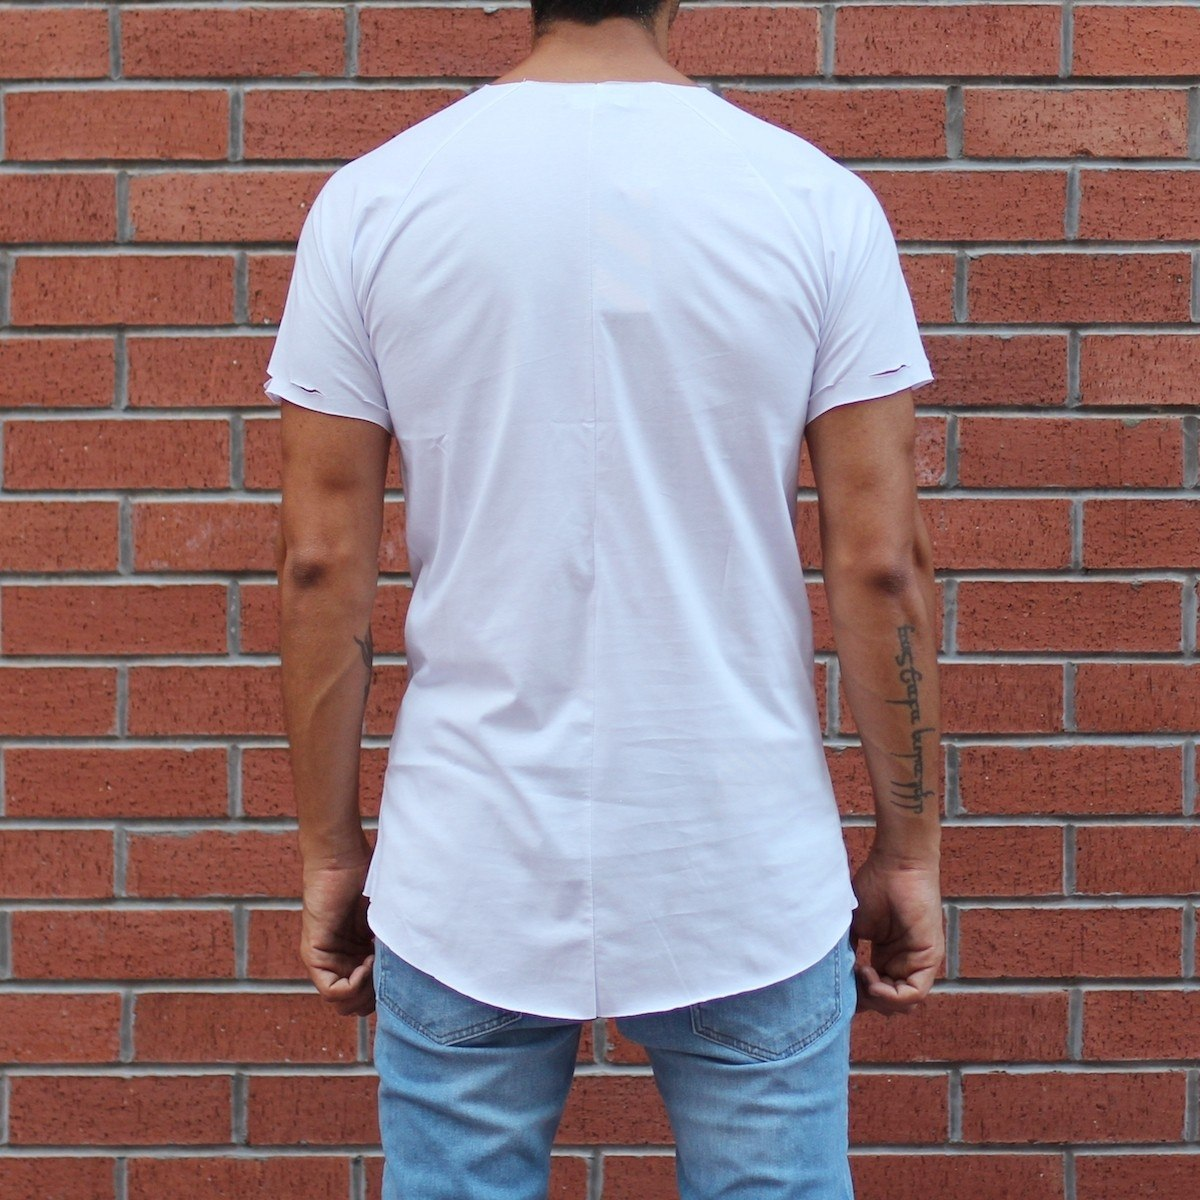 Men's Crew Neck T-Shirt With Rips In White MV T-shirt Collection - 2